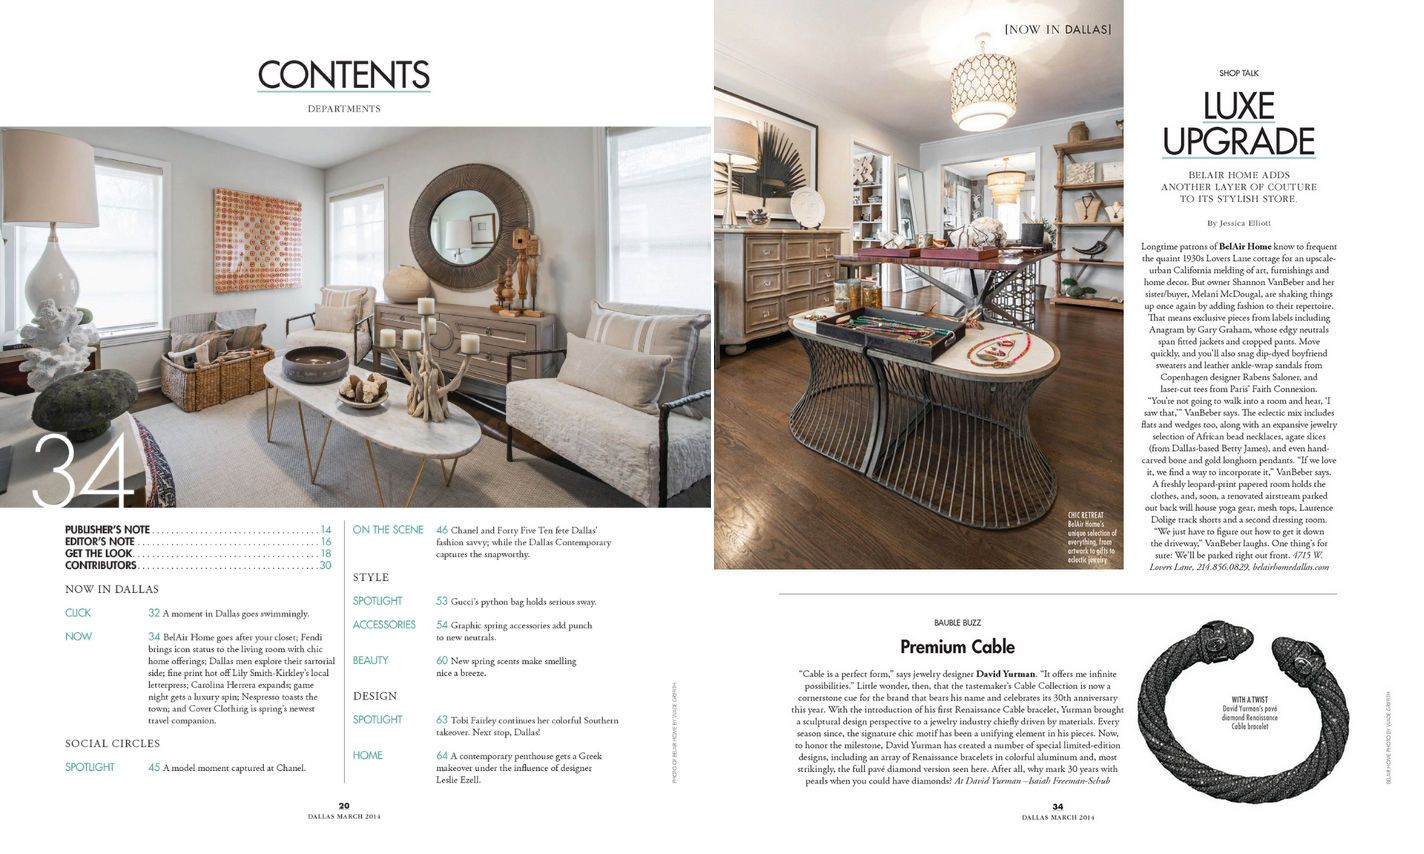 23_1modern_luxury_march_2014.jpg